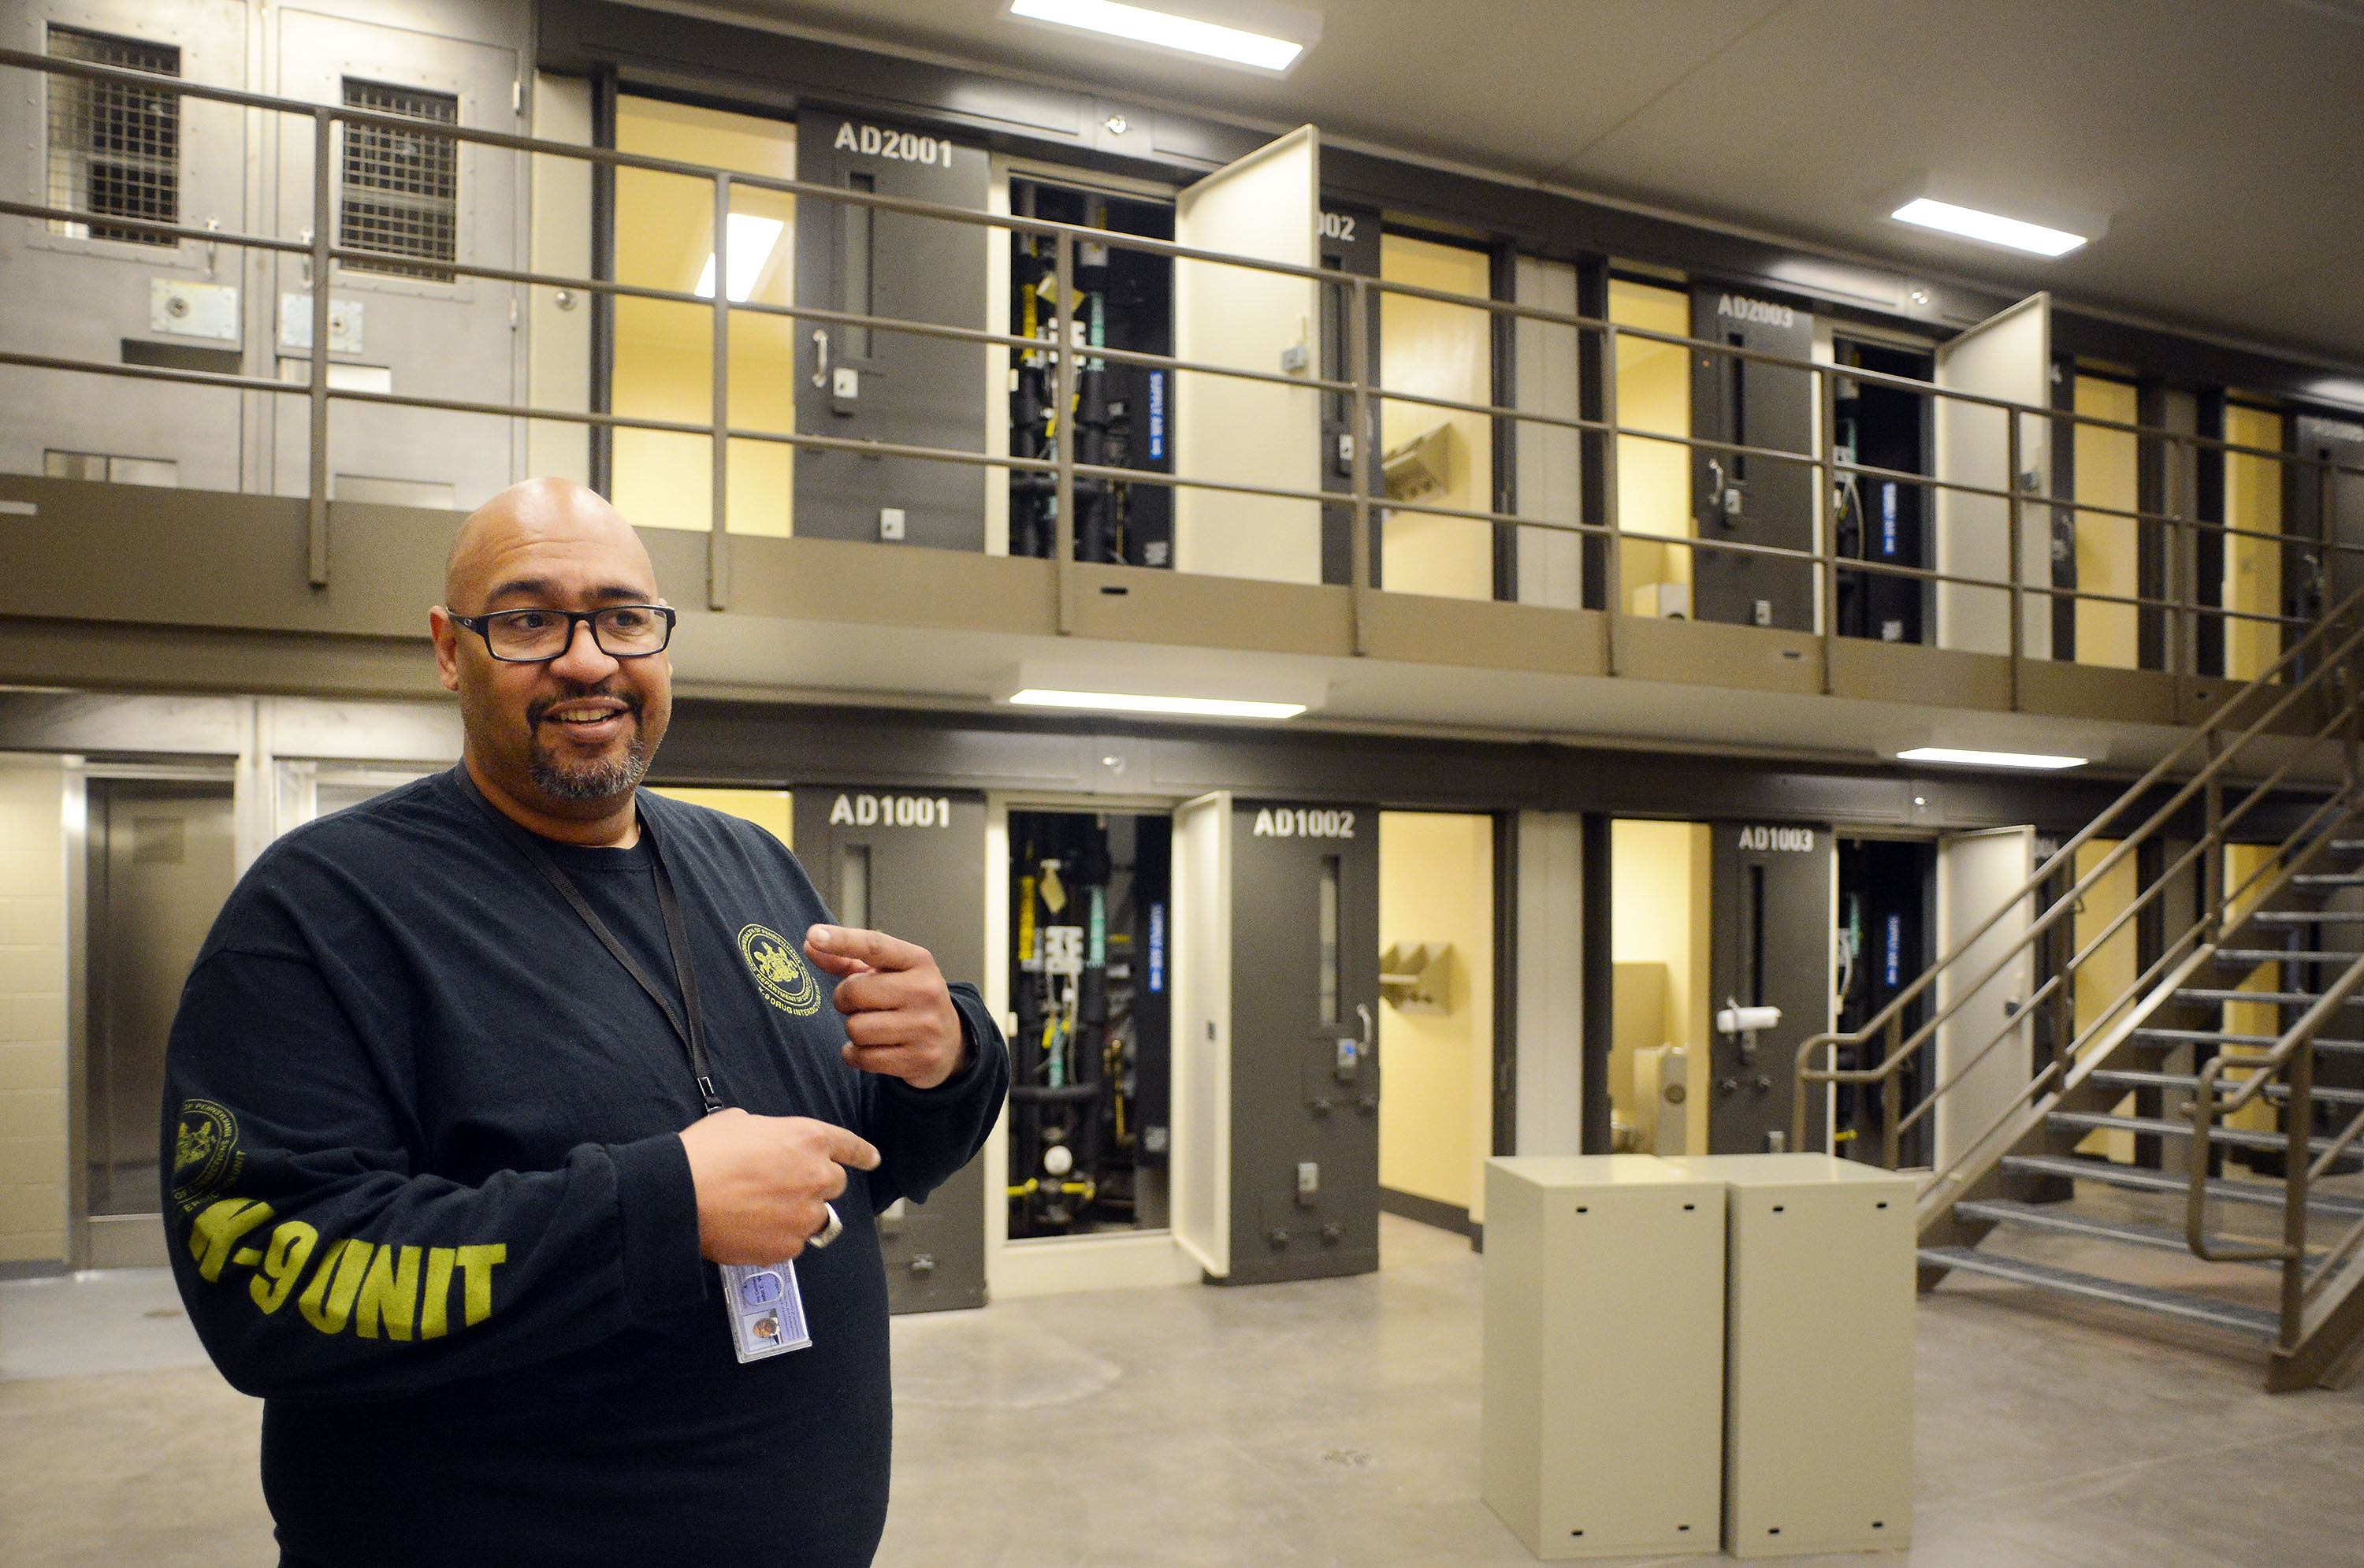 Corrections Secretary John Wetzel leads a tour through the newest prison in Pennsylvania Friday, September 01, 2017 at State Correction Institution Phoenix in Skippack, Pennsylvania. The facility is inching closer to opening, two years late, to replace Graterford Prison at a cost of $400 million. (WILLIAM THOMAS CAIN / For The Philadelphia Inquirer)